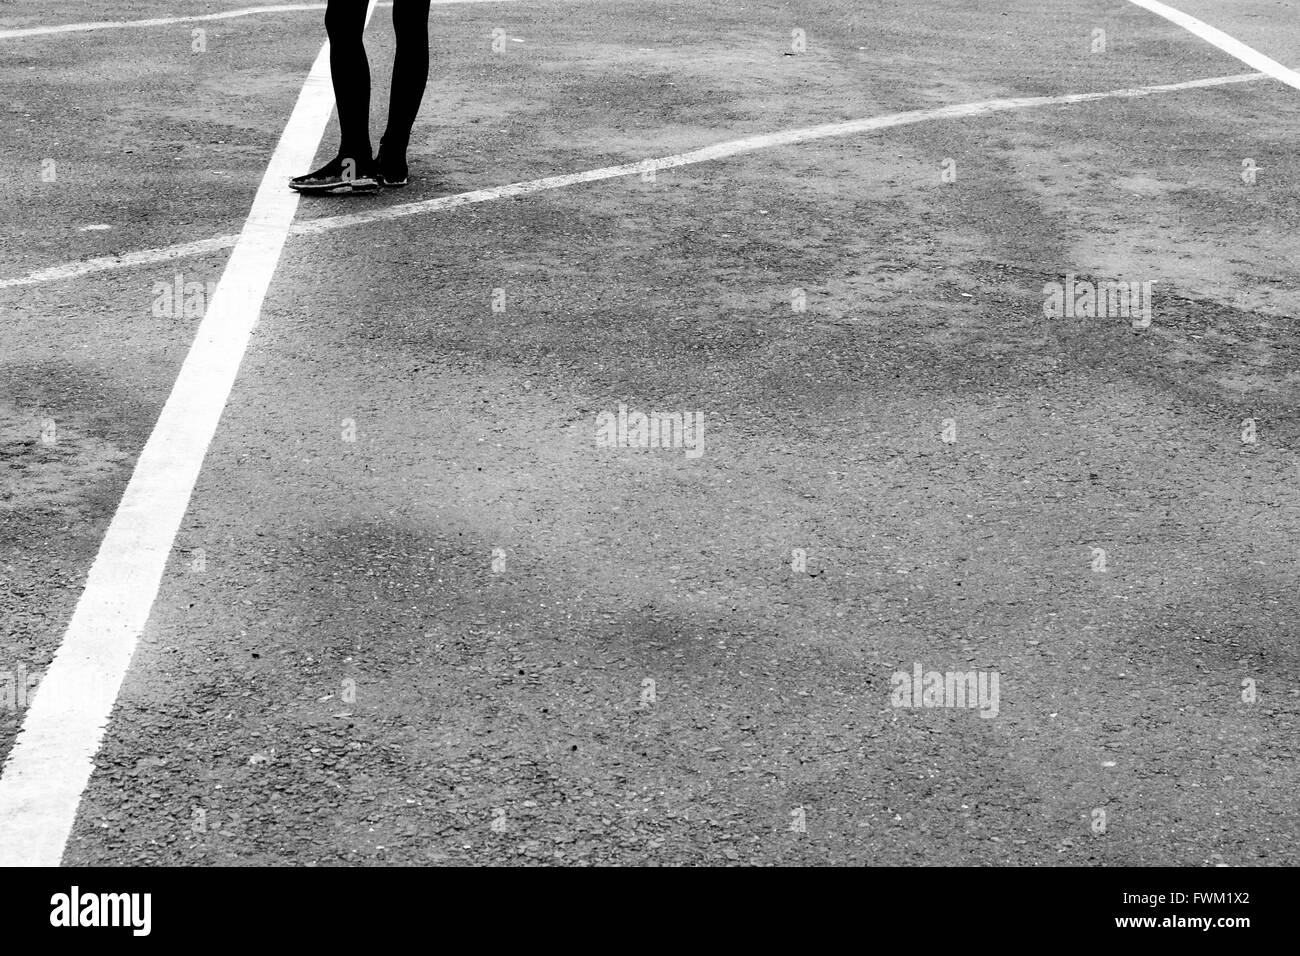 Low Section Of Woman Standing On Road - Stock Image